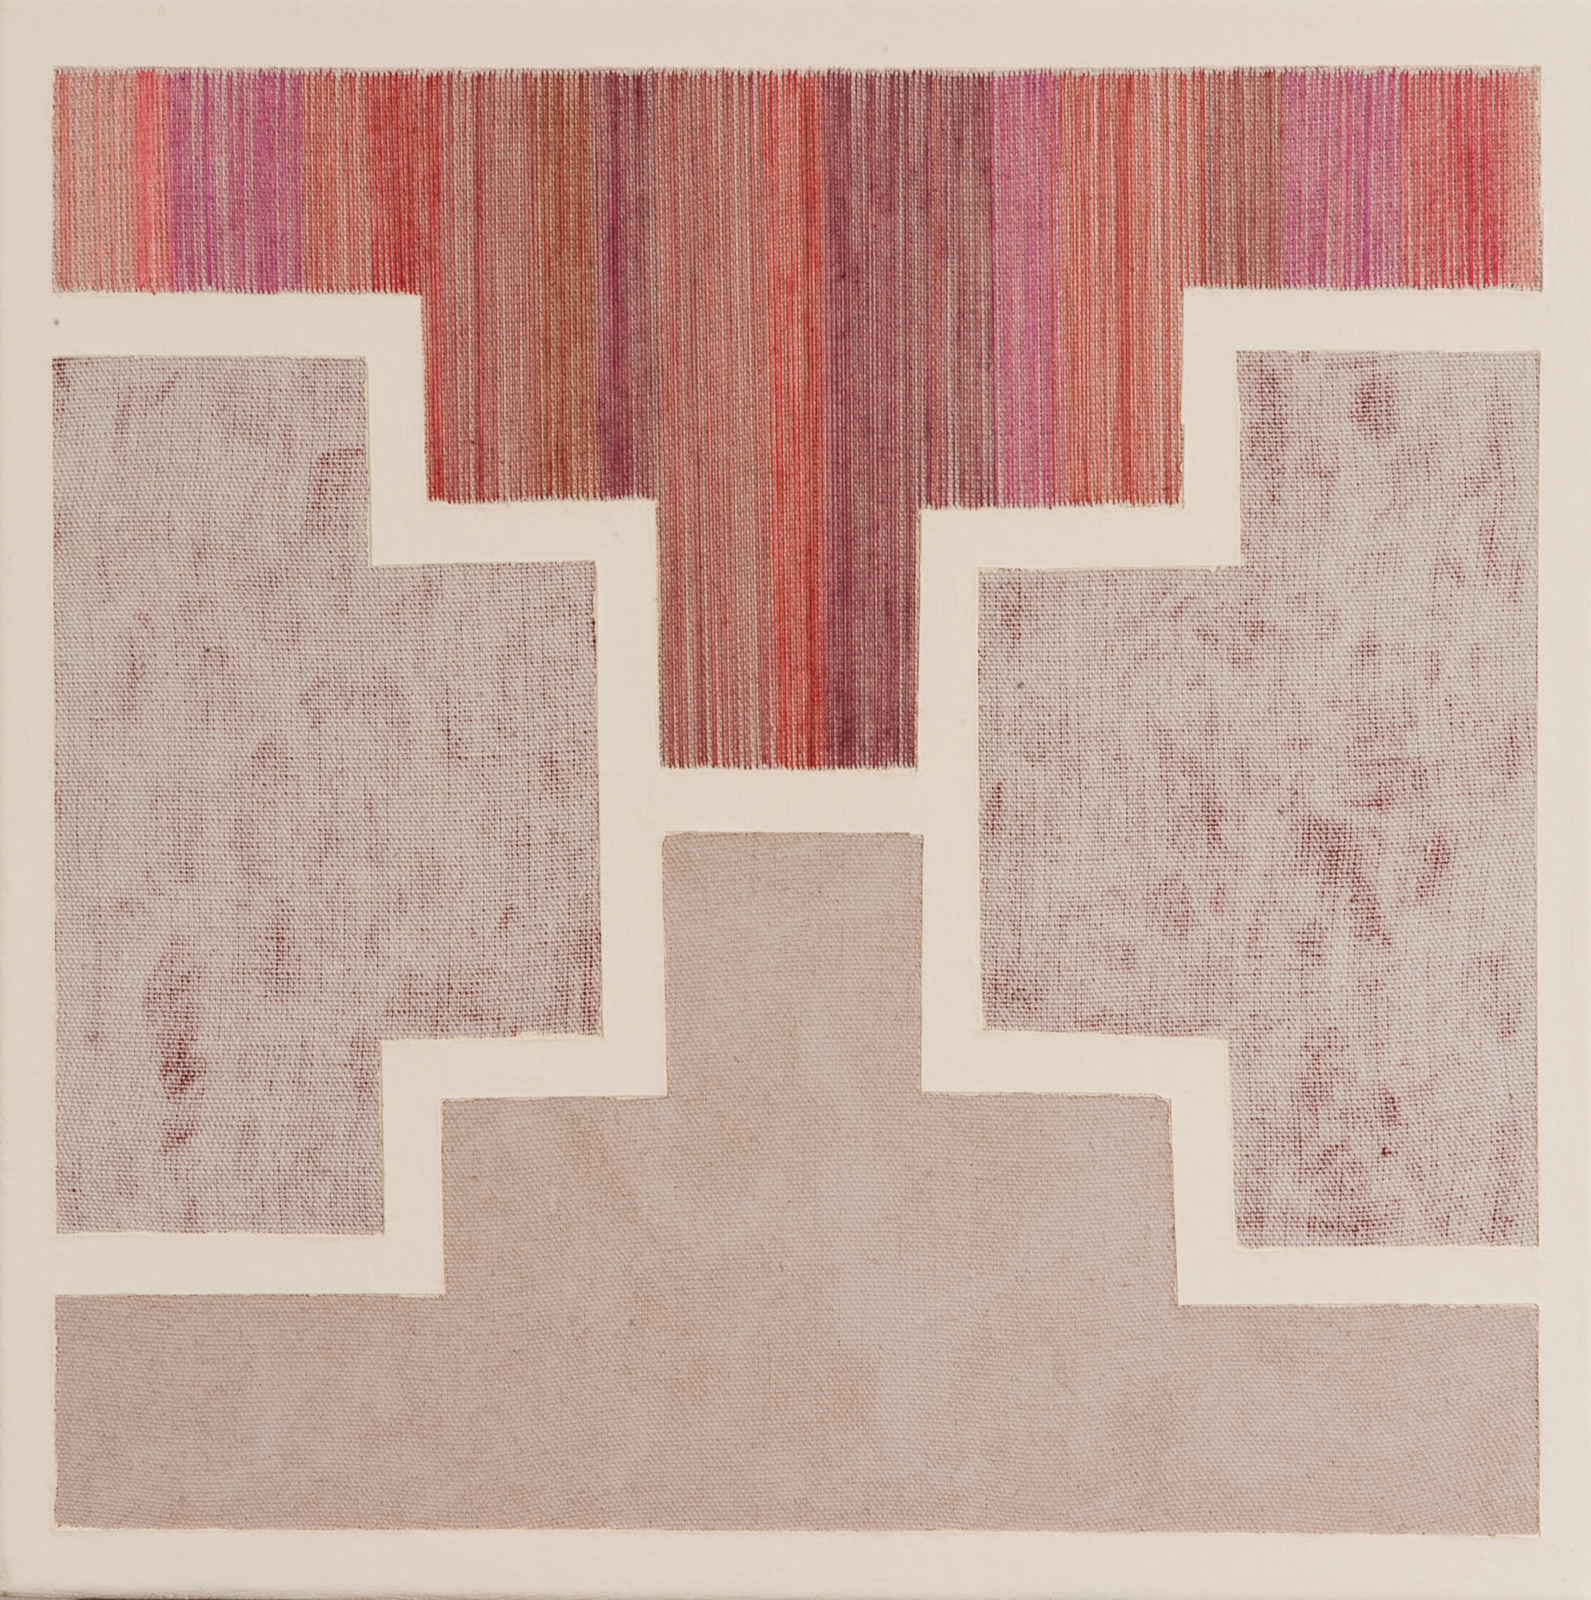 8 - Being Mama  2013  14x14  Flashe and thread on canvas.jpg